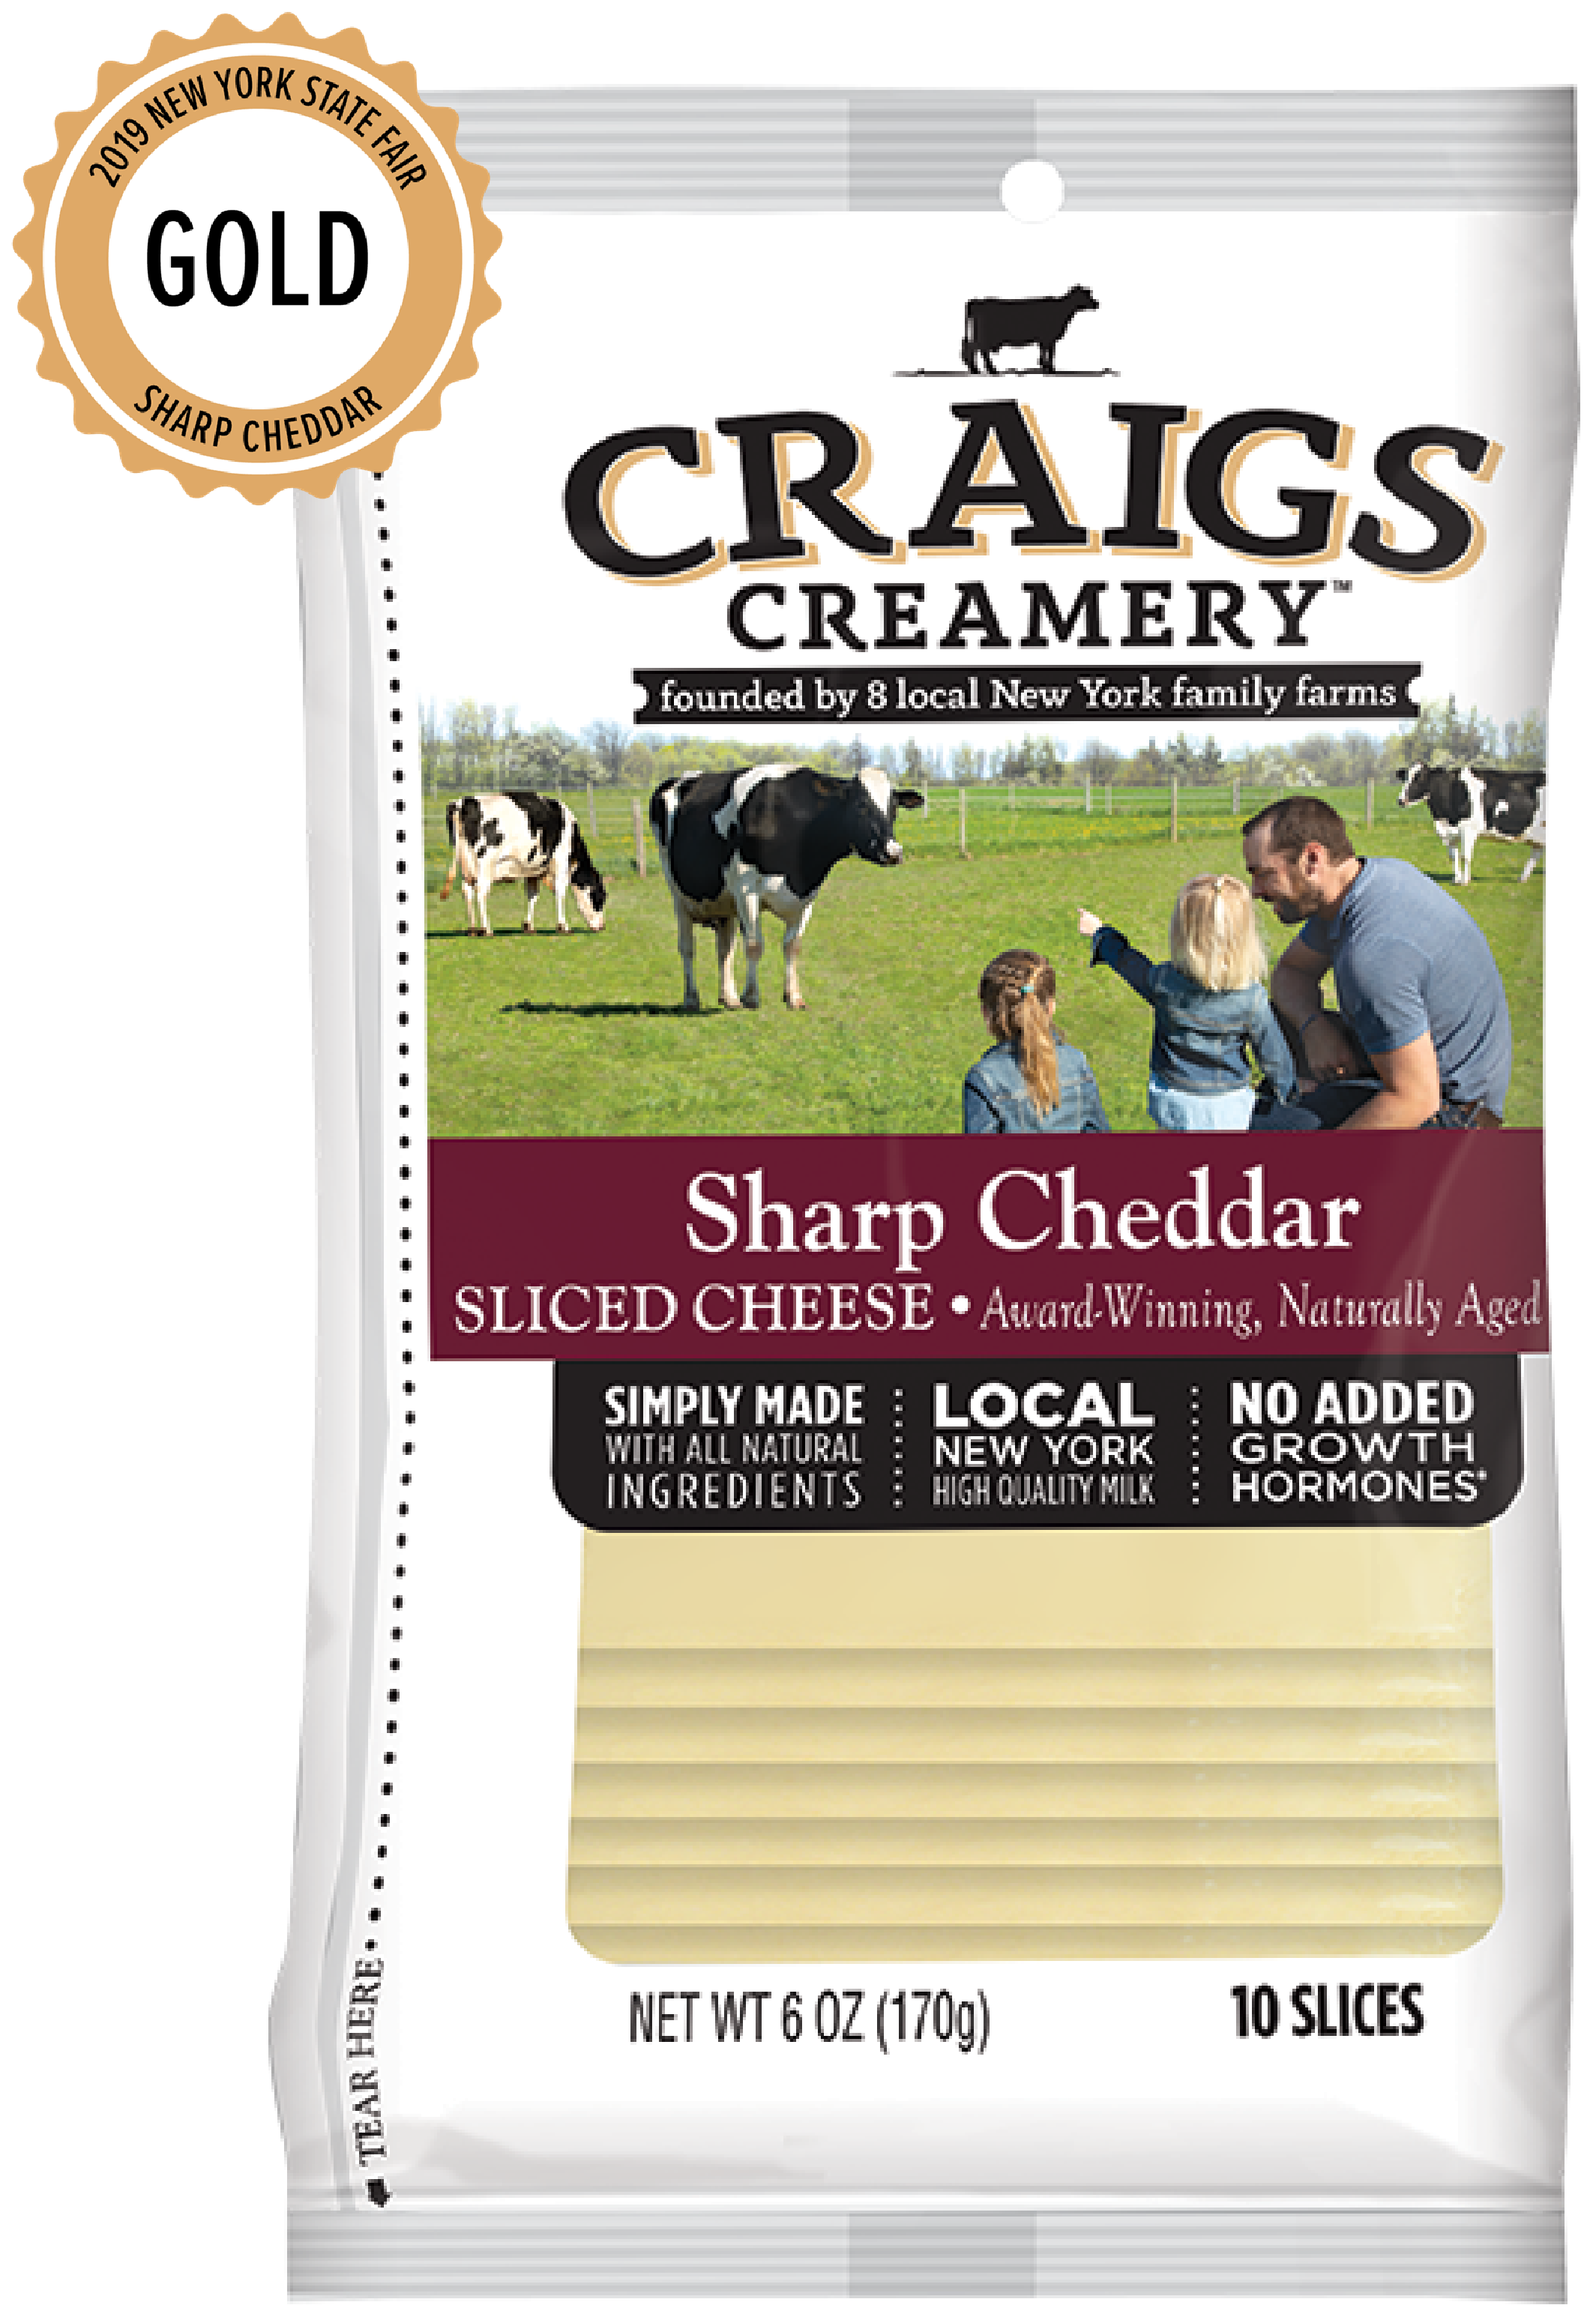 Aerial shot of cows grazing at one of Craigs Creamery local New York family farms overlayed with packaging for our farm-fresh Sharp Cheddar Slices